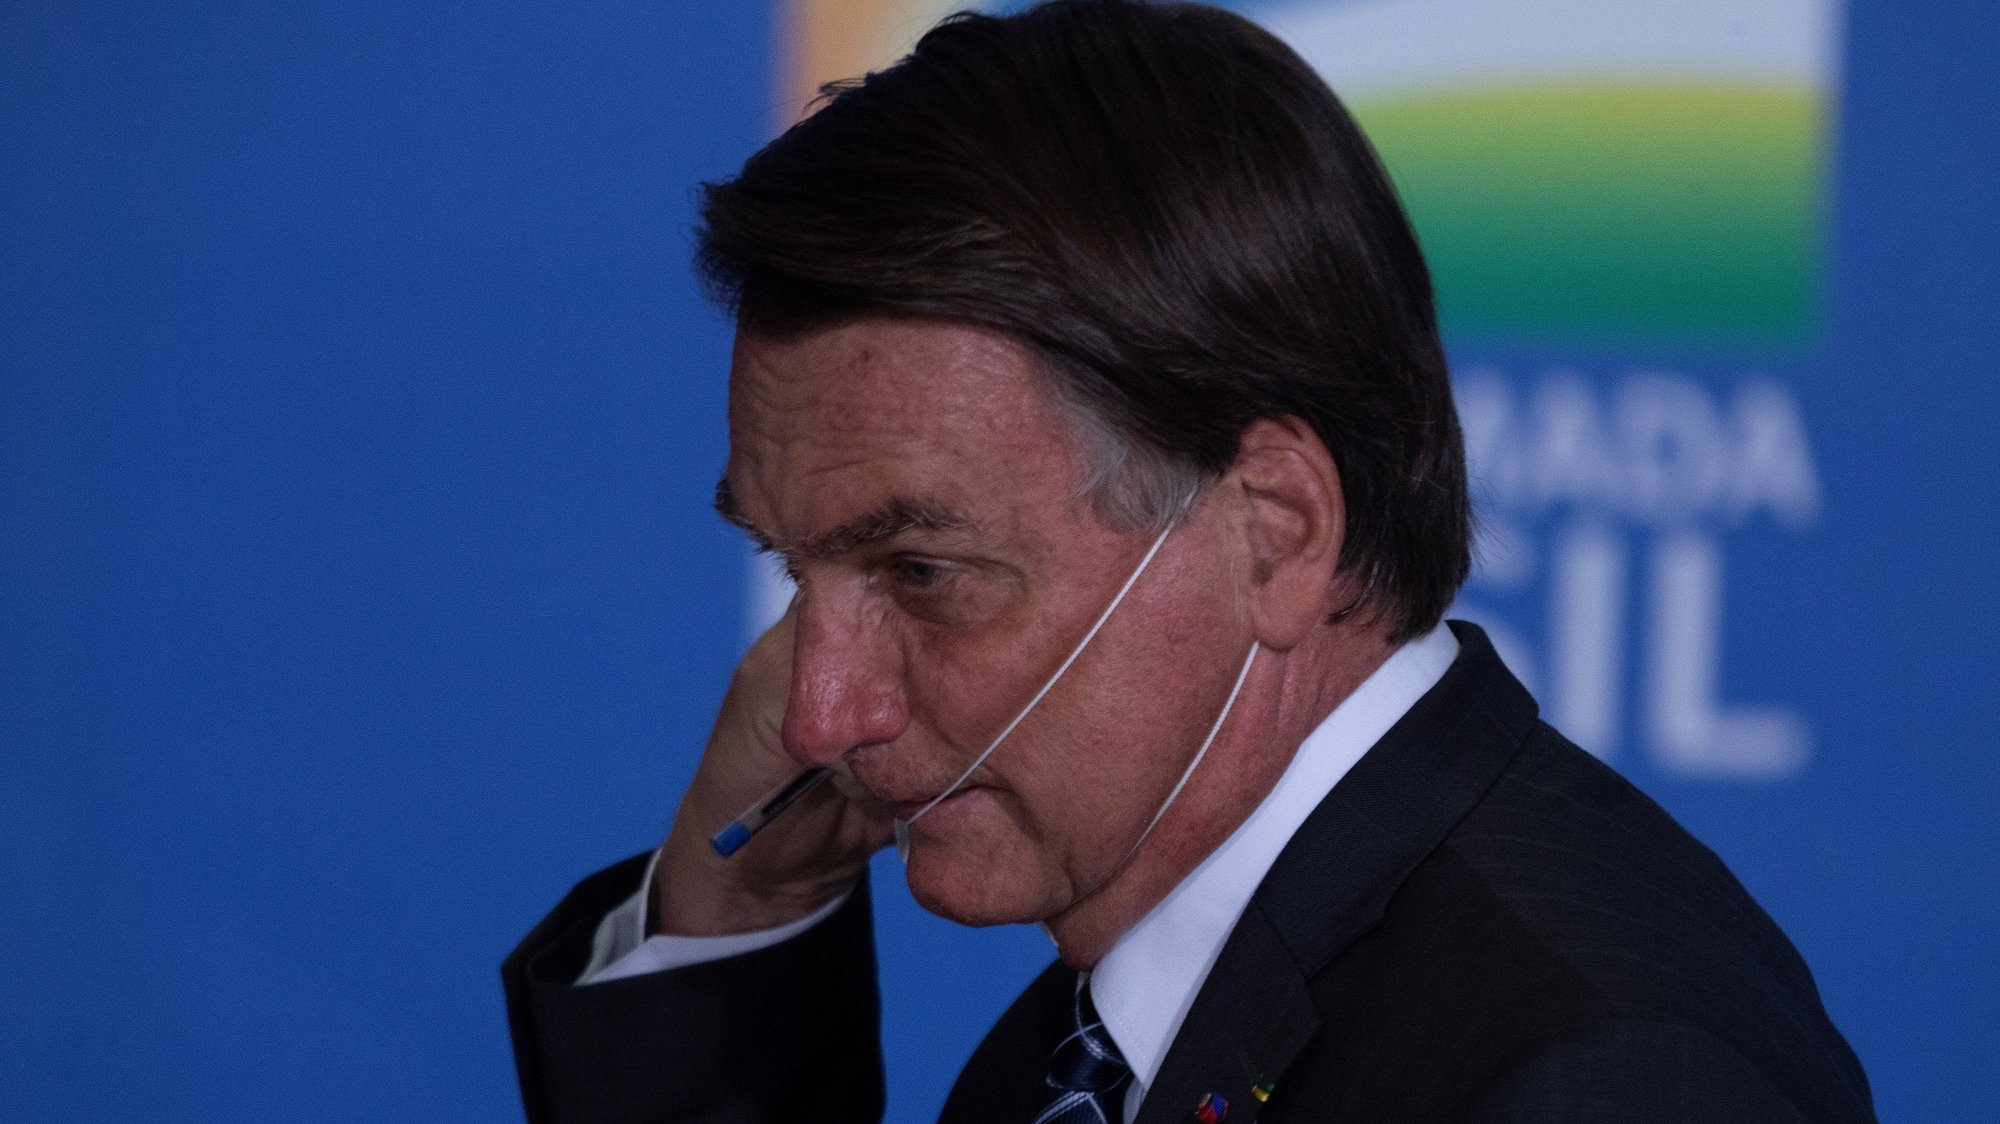 epa09294580 Brazilian President Jair Bolsonaro removes his face mask during the launching of an agriculture program at Planalto Presidential Palace in Brasilia, Brazil, 22 June 2021. Brazil's Goverment announced some US $50 billion for investments in agriculture during 2021-2022.  EPA/Joédson Alves